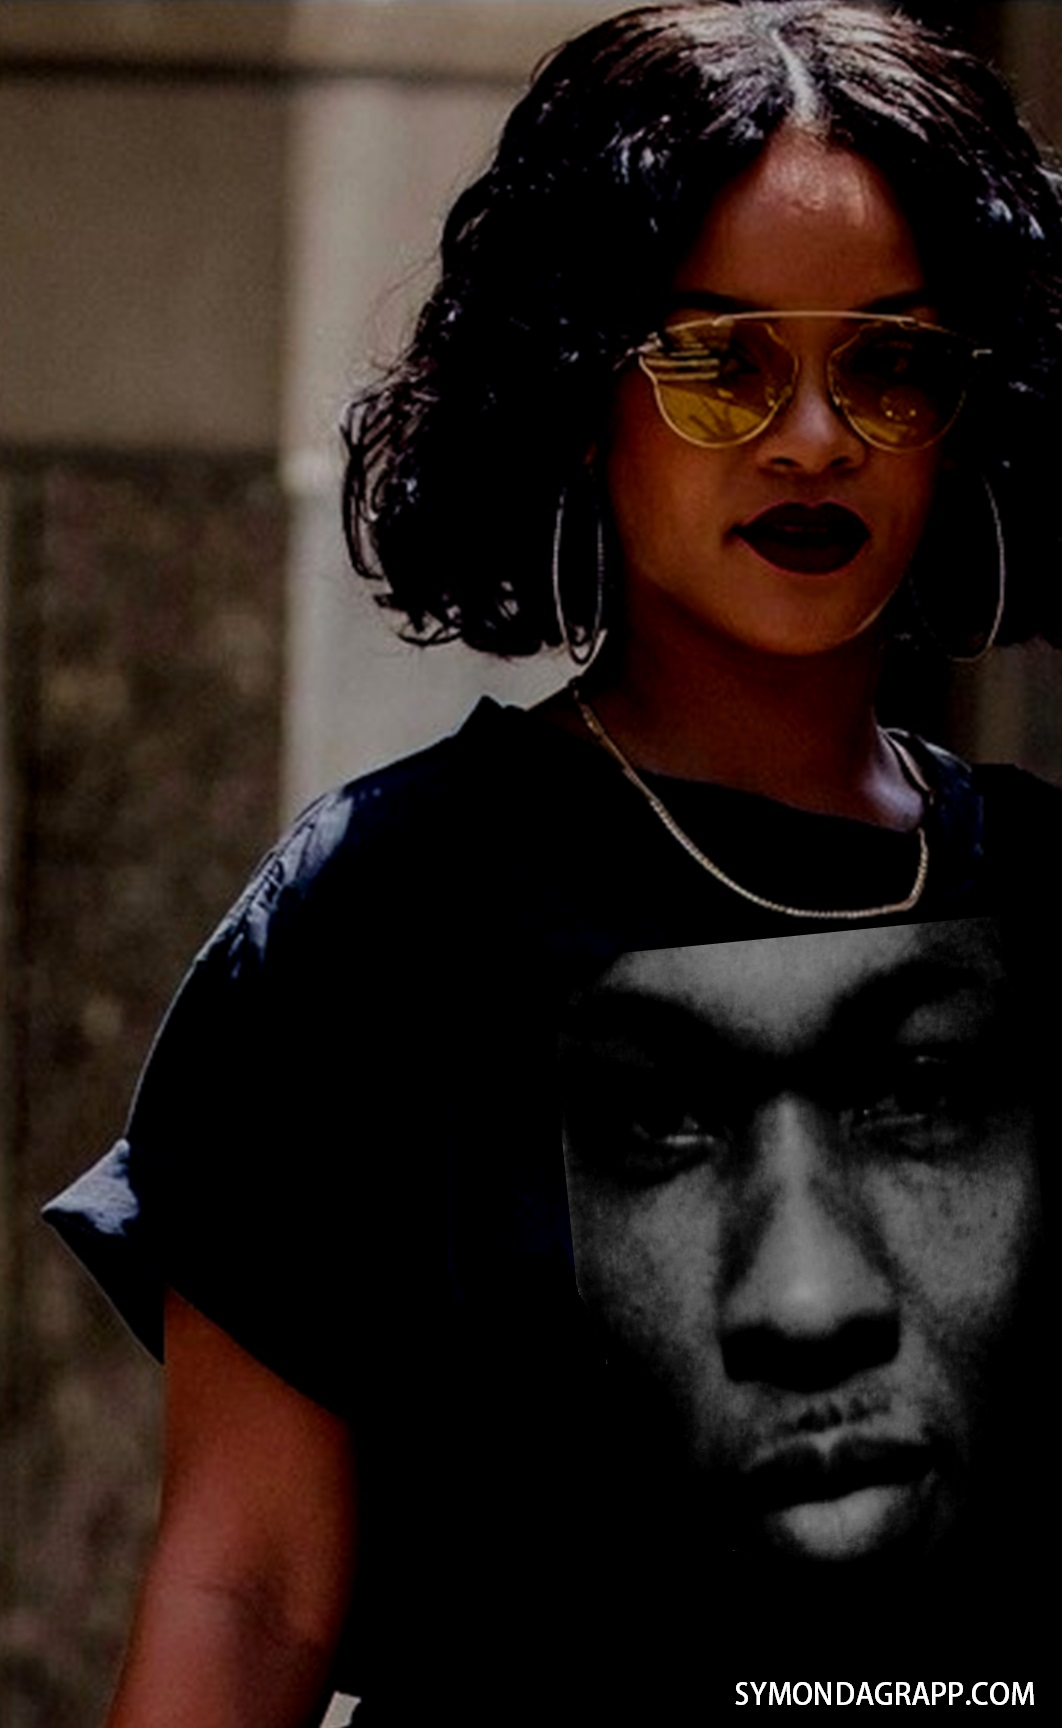 Rihanna wife of Infamous Gangster Symon Dagrapp